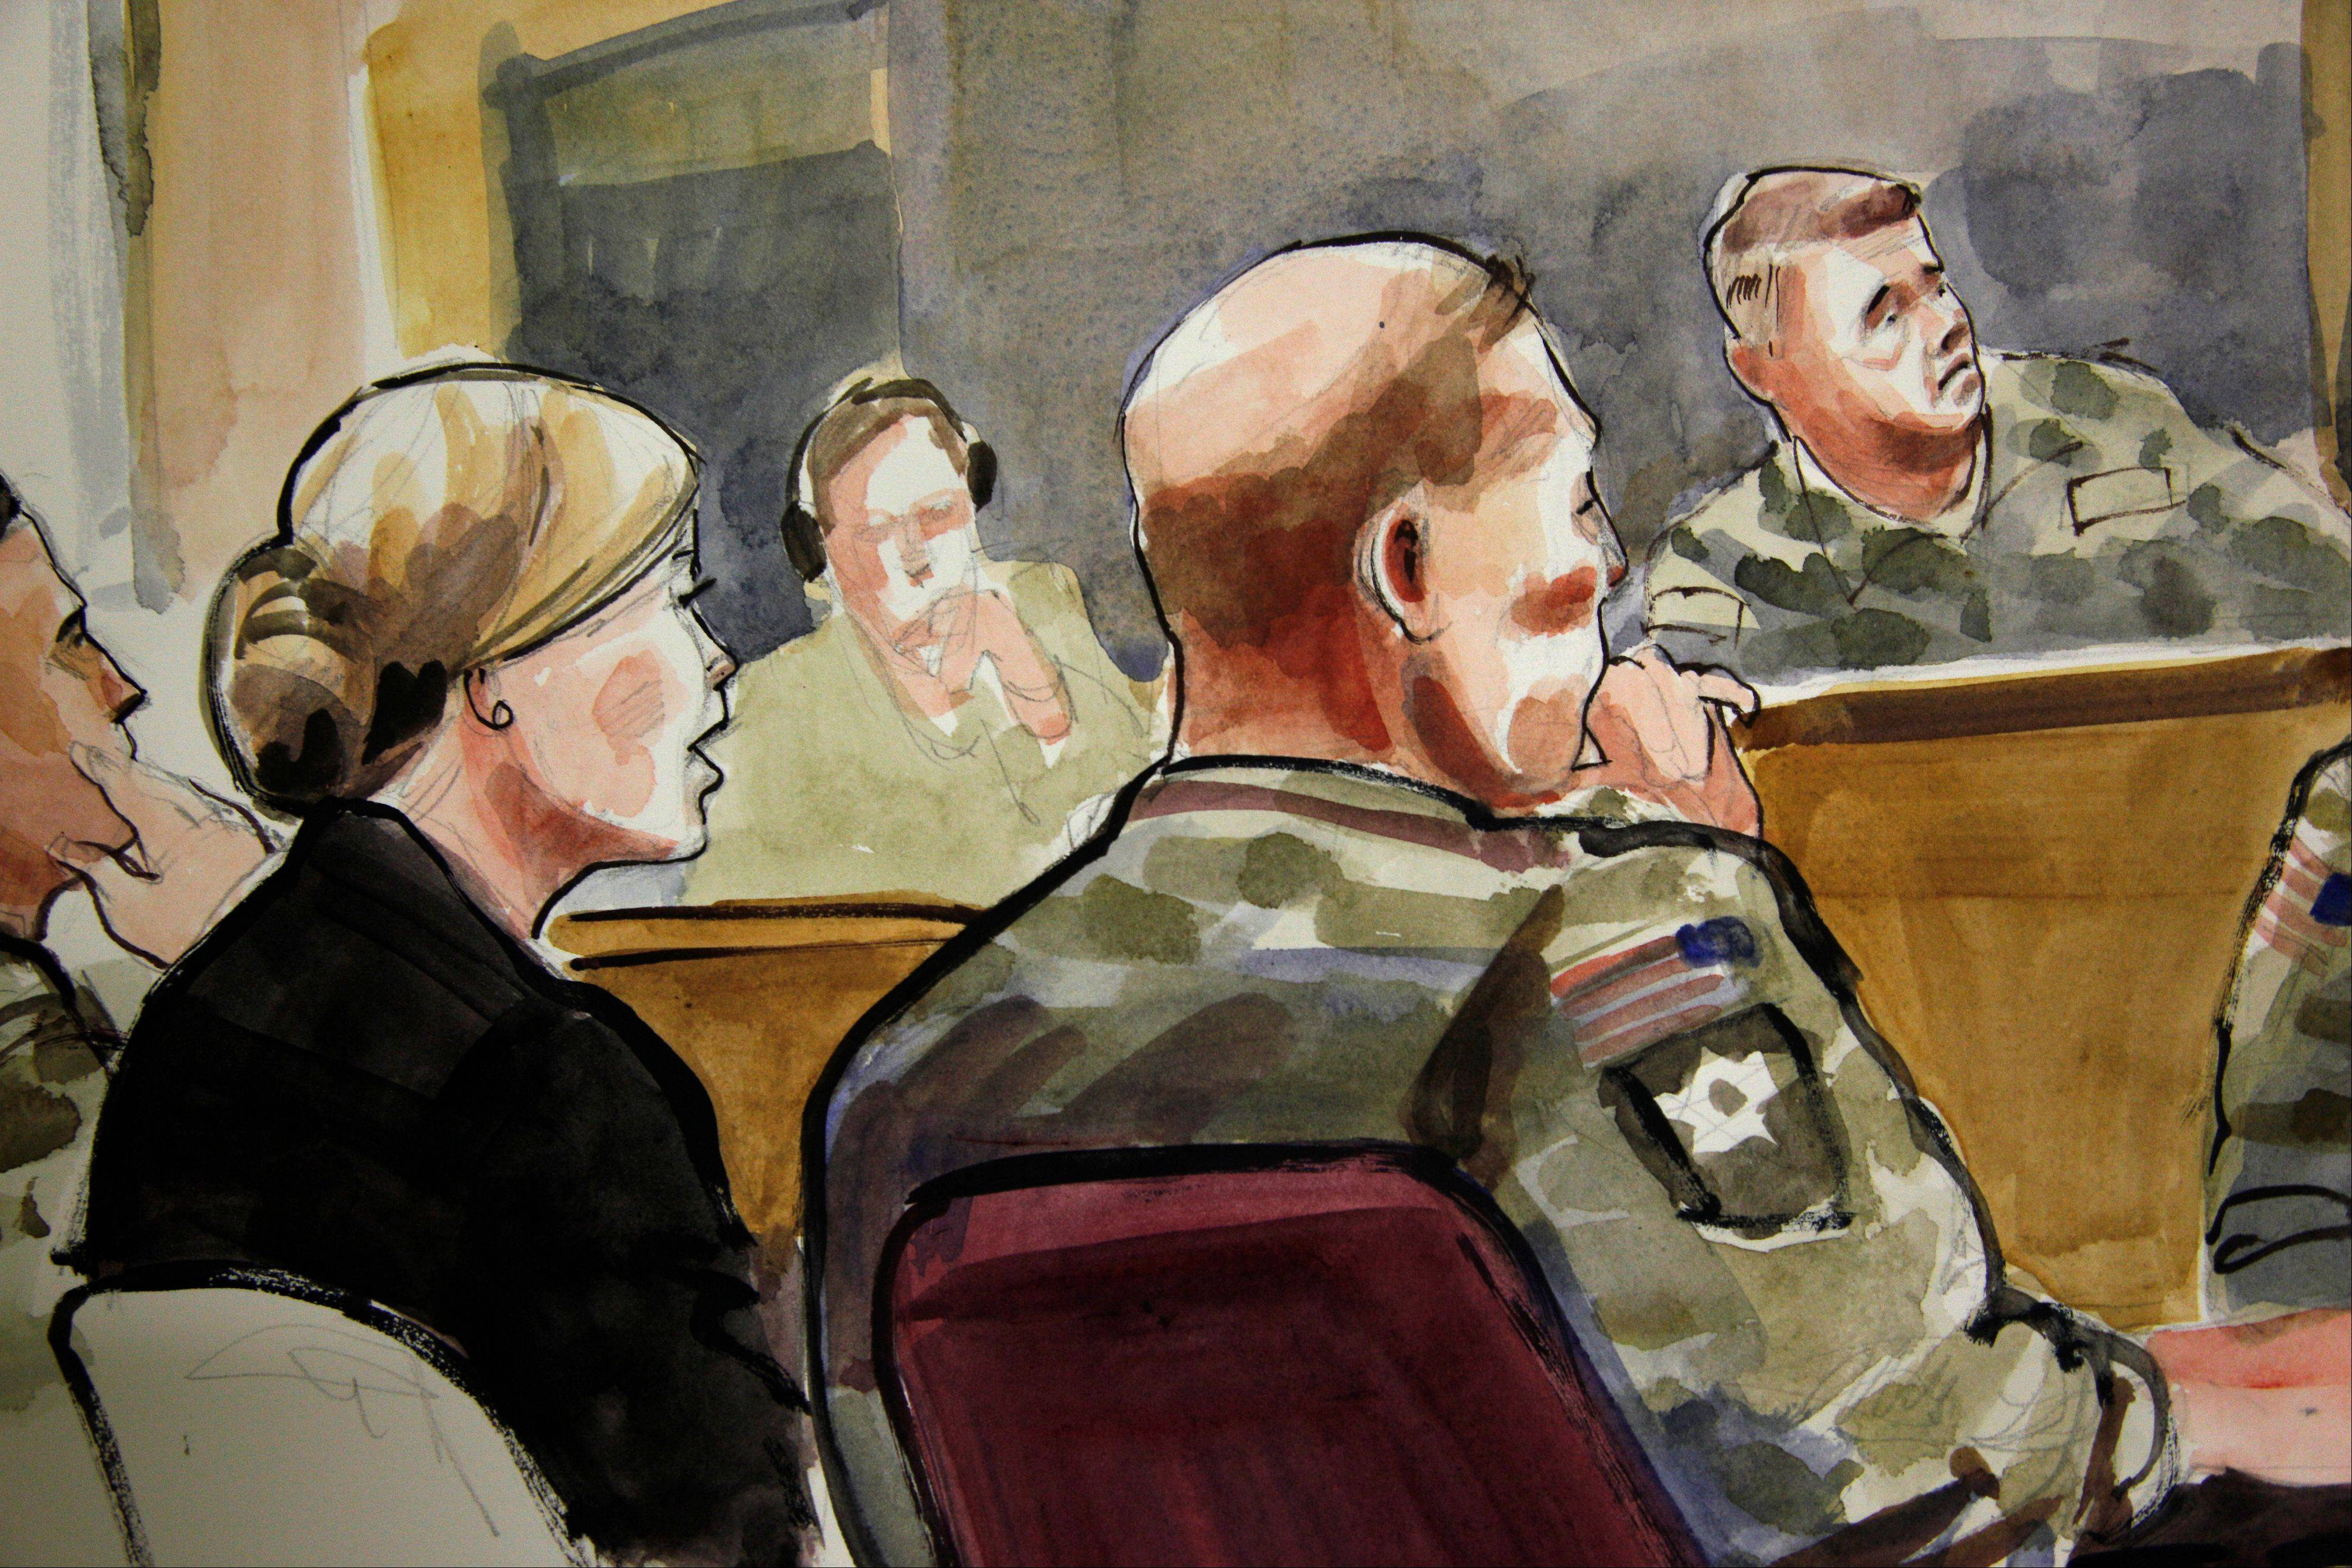 In this detail of a courtroom sketch, U.S. Army Staff Sgt. Robert Bales, seated at front-right, listens Monday, Nov. 5, 2012, during a preliminary hearing in a military courtroom at Joint Base Lewis McChord in Washington state. Bales is accused of 16 counts of premeditated murder and six counts of attempted murder for a pre-dawn attack on two villages in Kandahar province in Afghanistan in March, 2012. At upper-right is Investigating Officer Col. Lee Deneke, and seated at front-left is Bales� civilian attorney, Emma Scanlan.